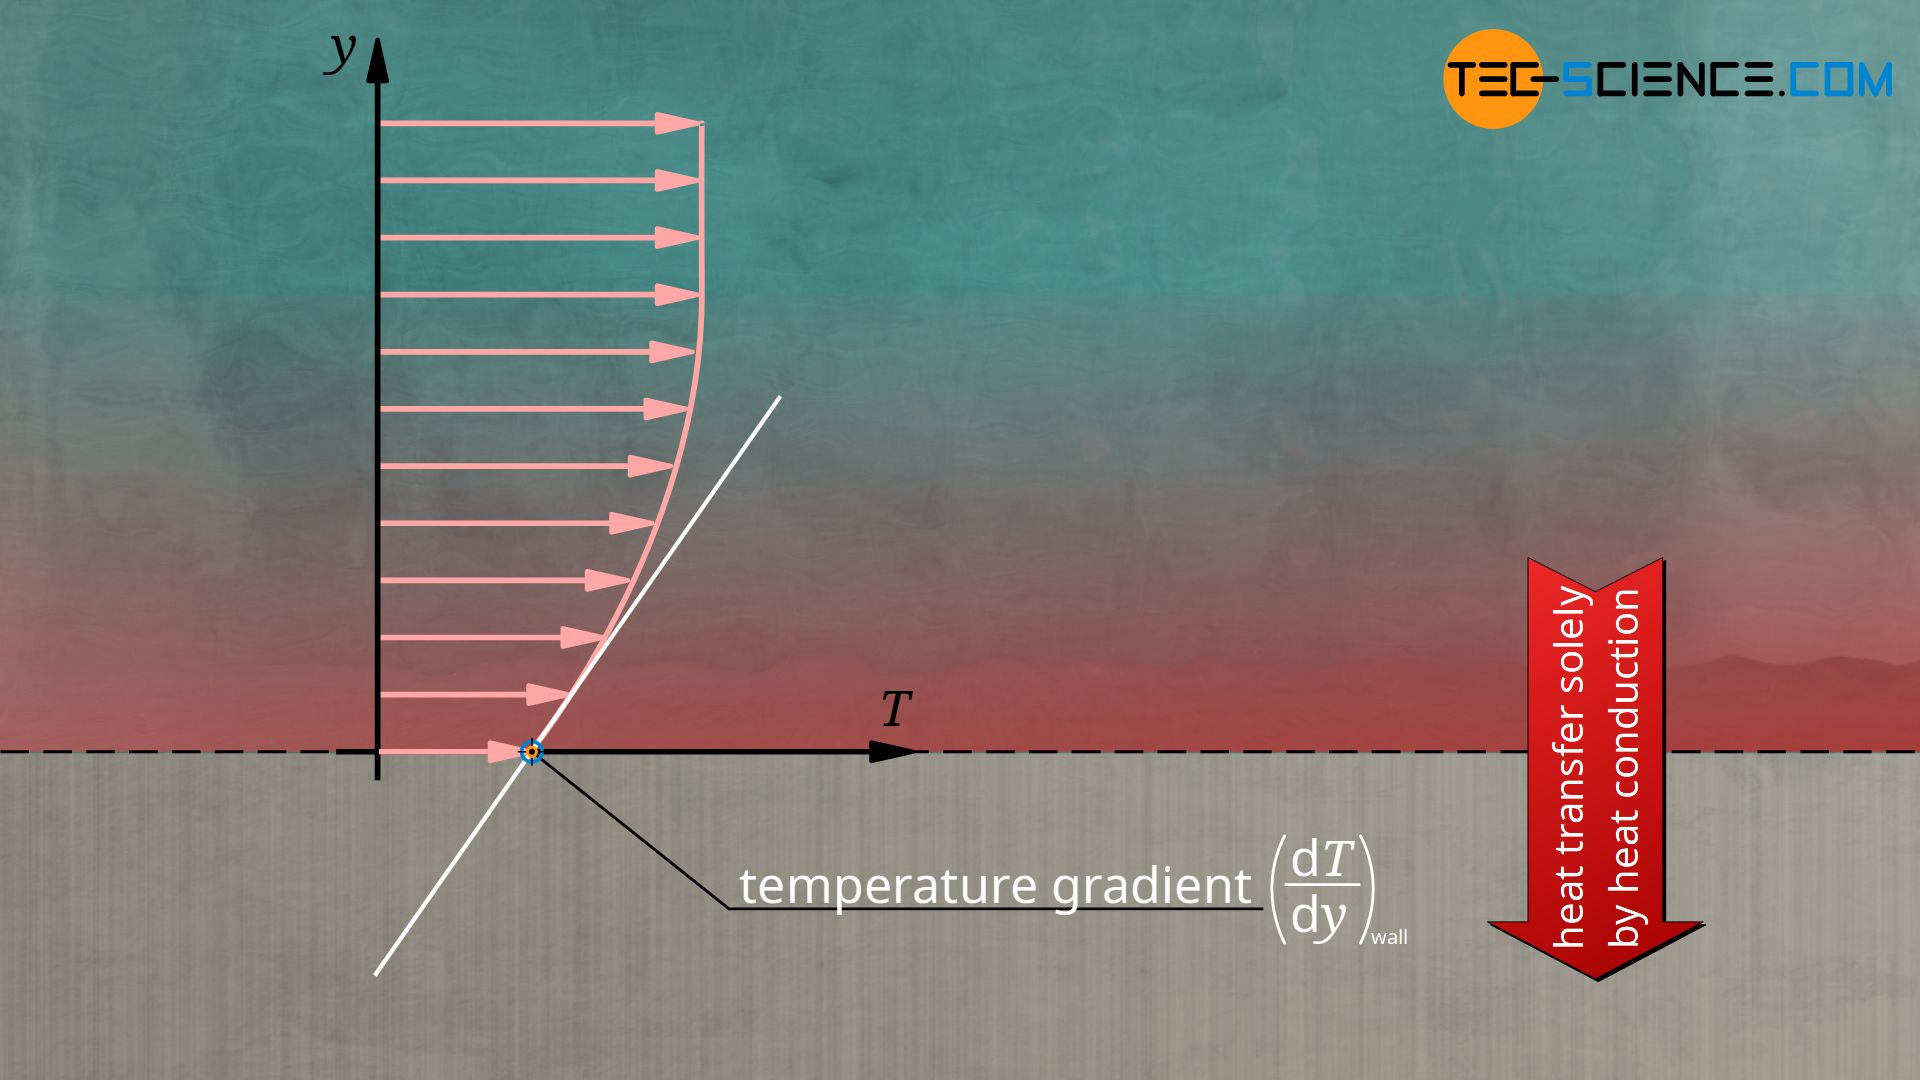 Heat transport on the wall solely by heat conduction